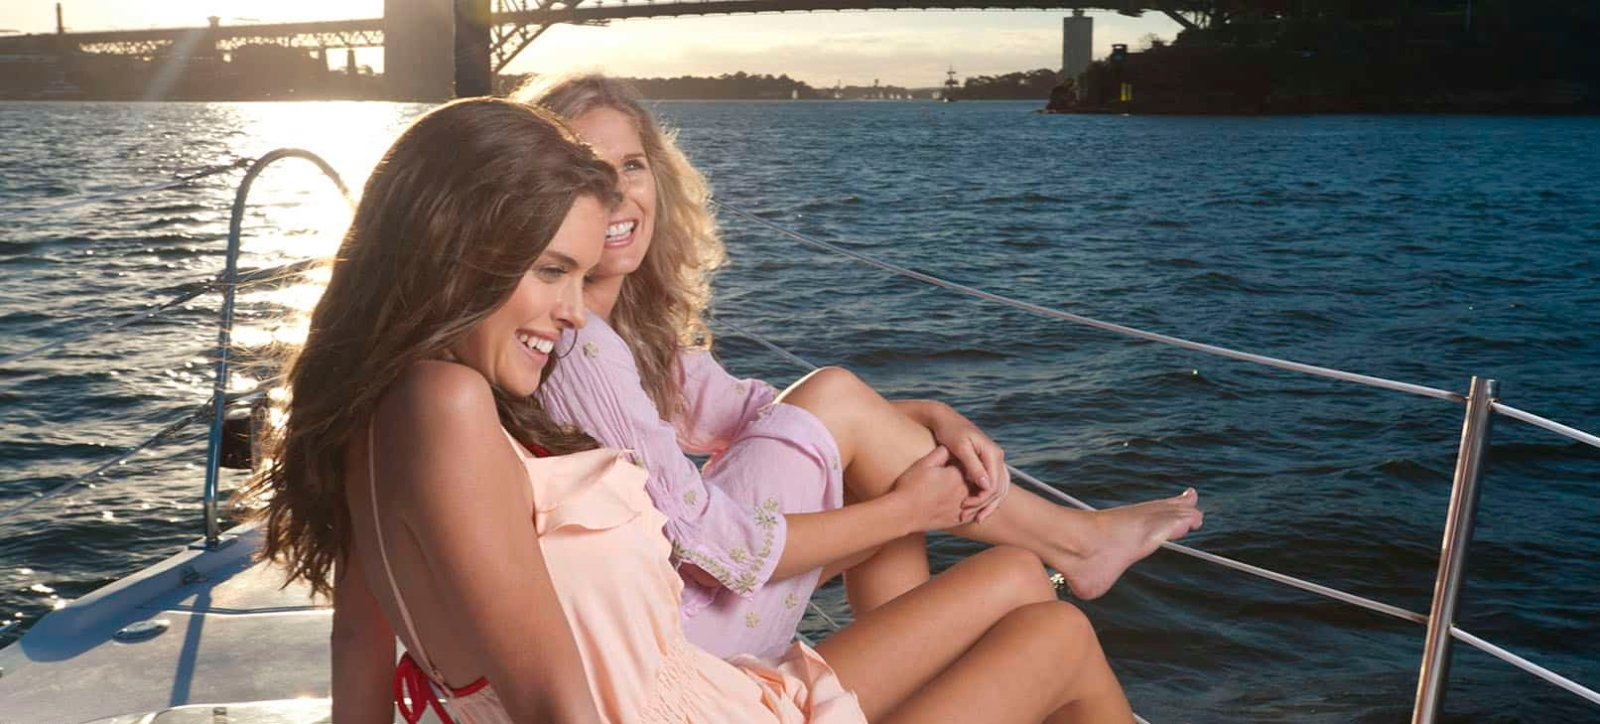 2 women on front of yacht